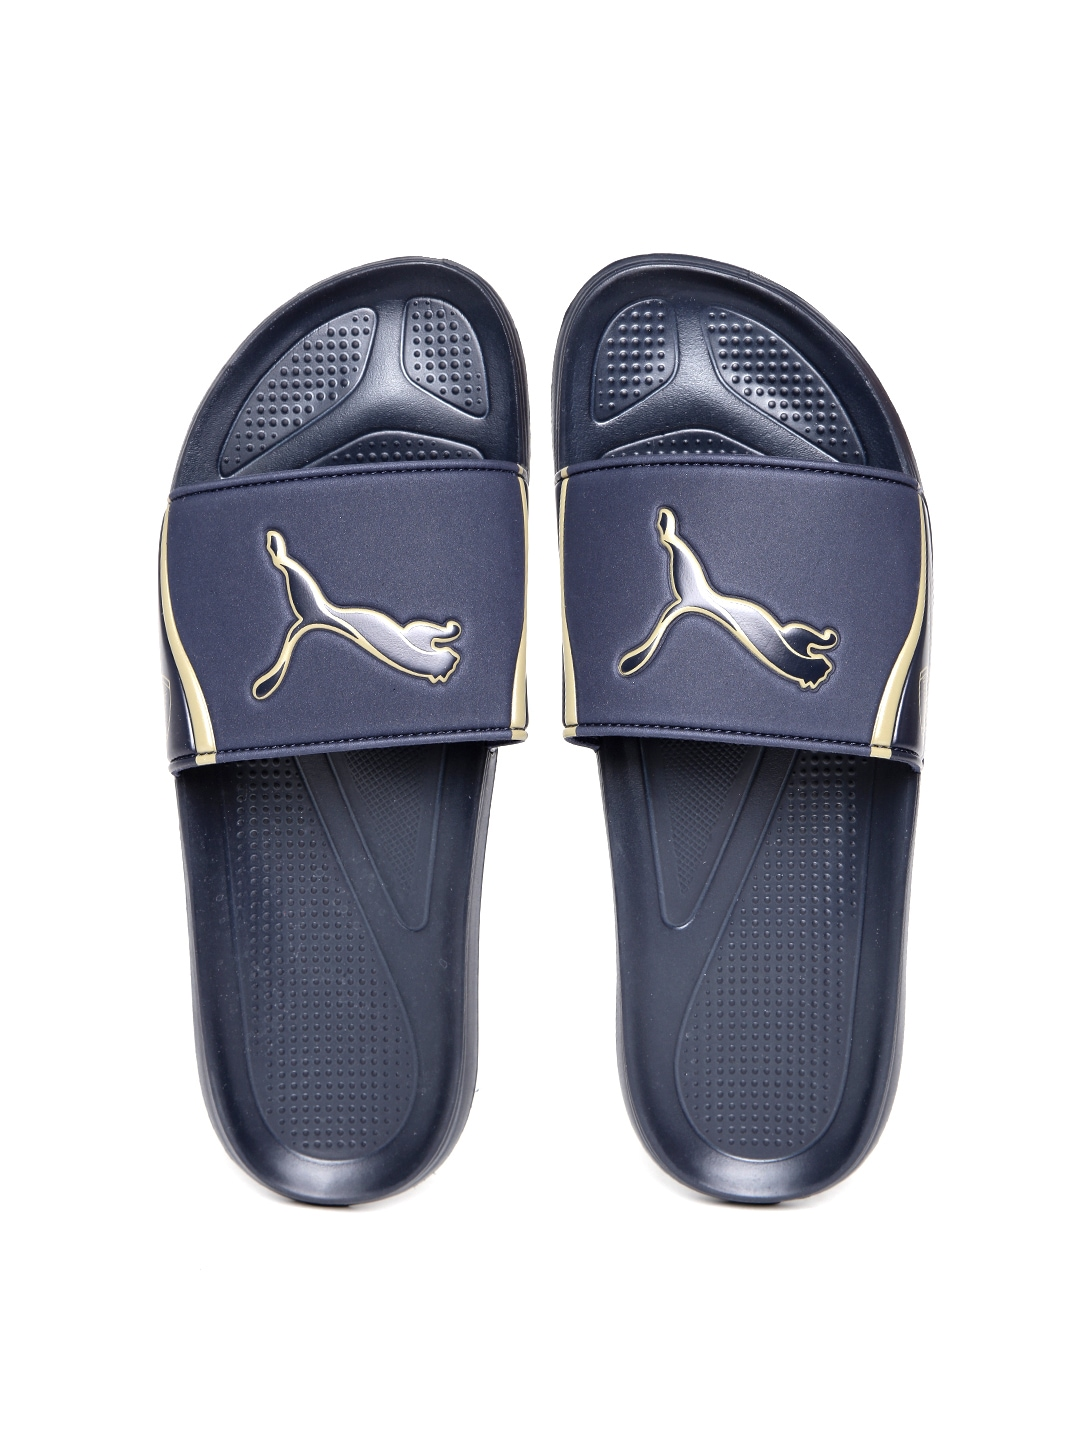 myntra arsenal by puma men navy afc team cat flip flops. Black Bedroom Furniture Sets. Home Design Ideas